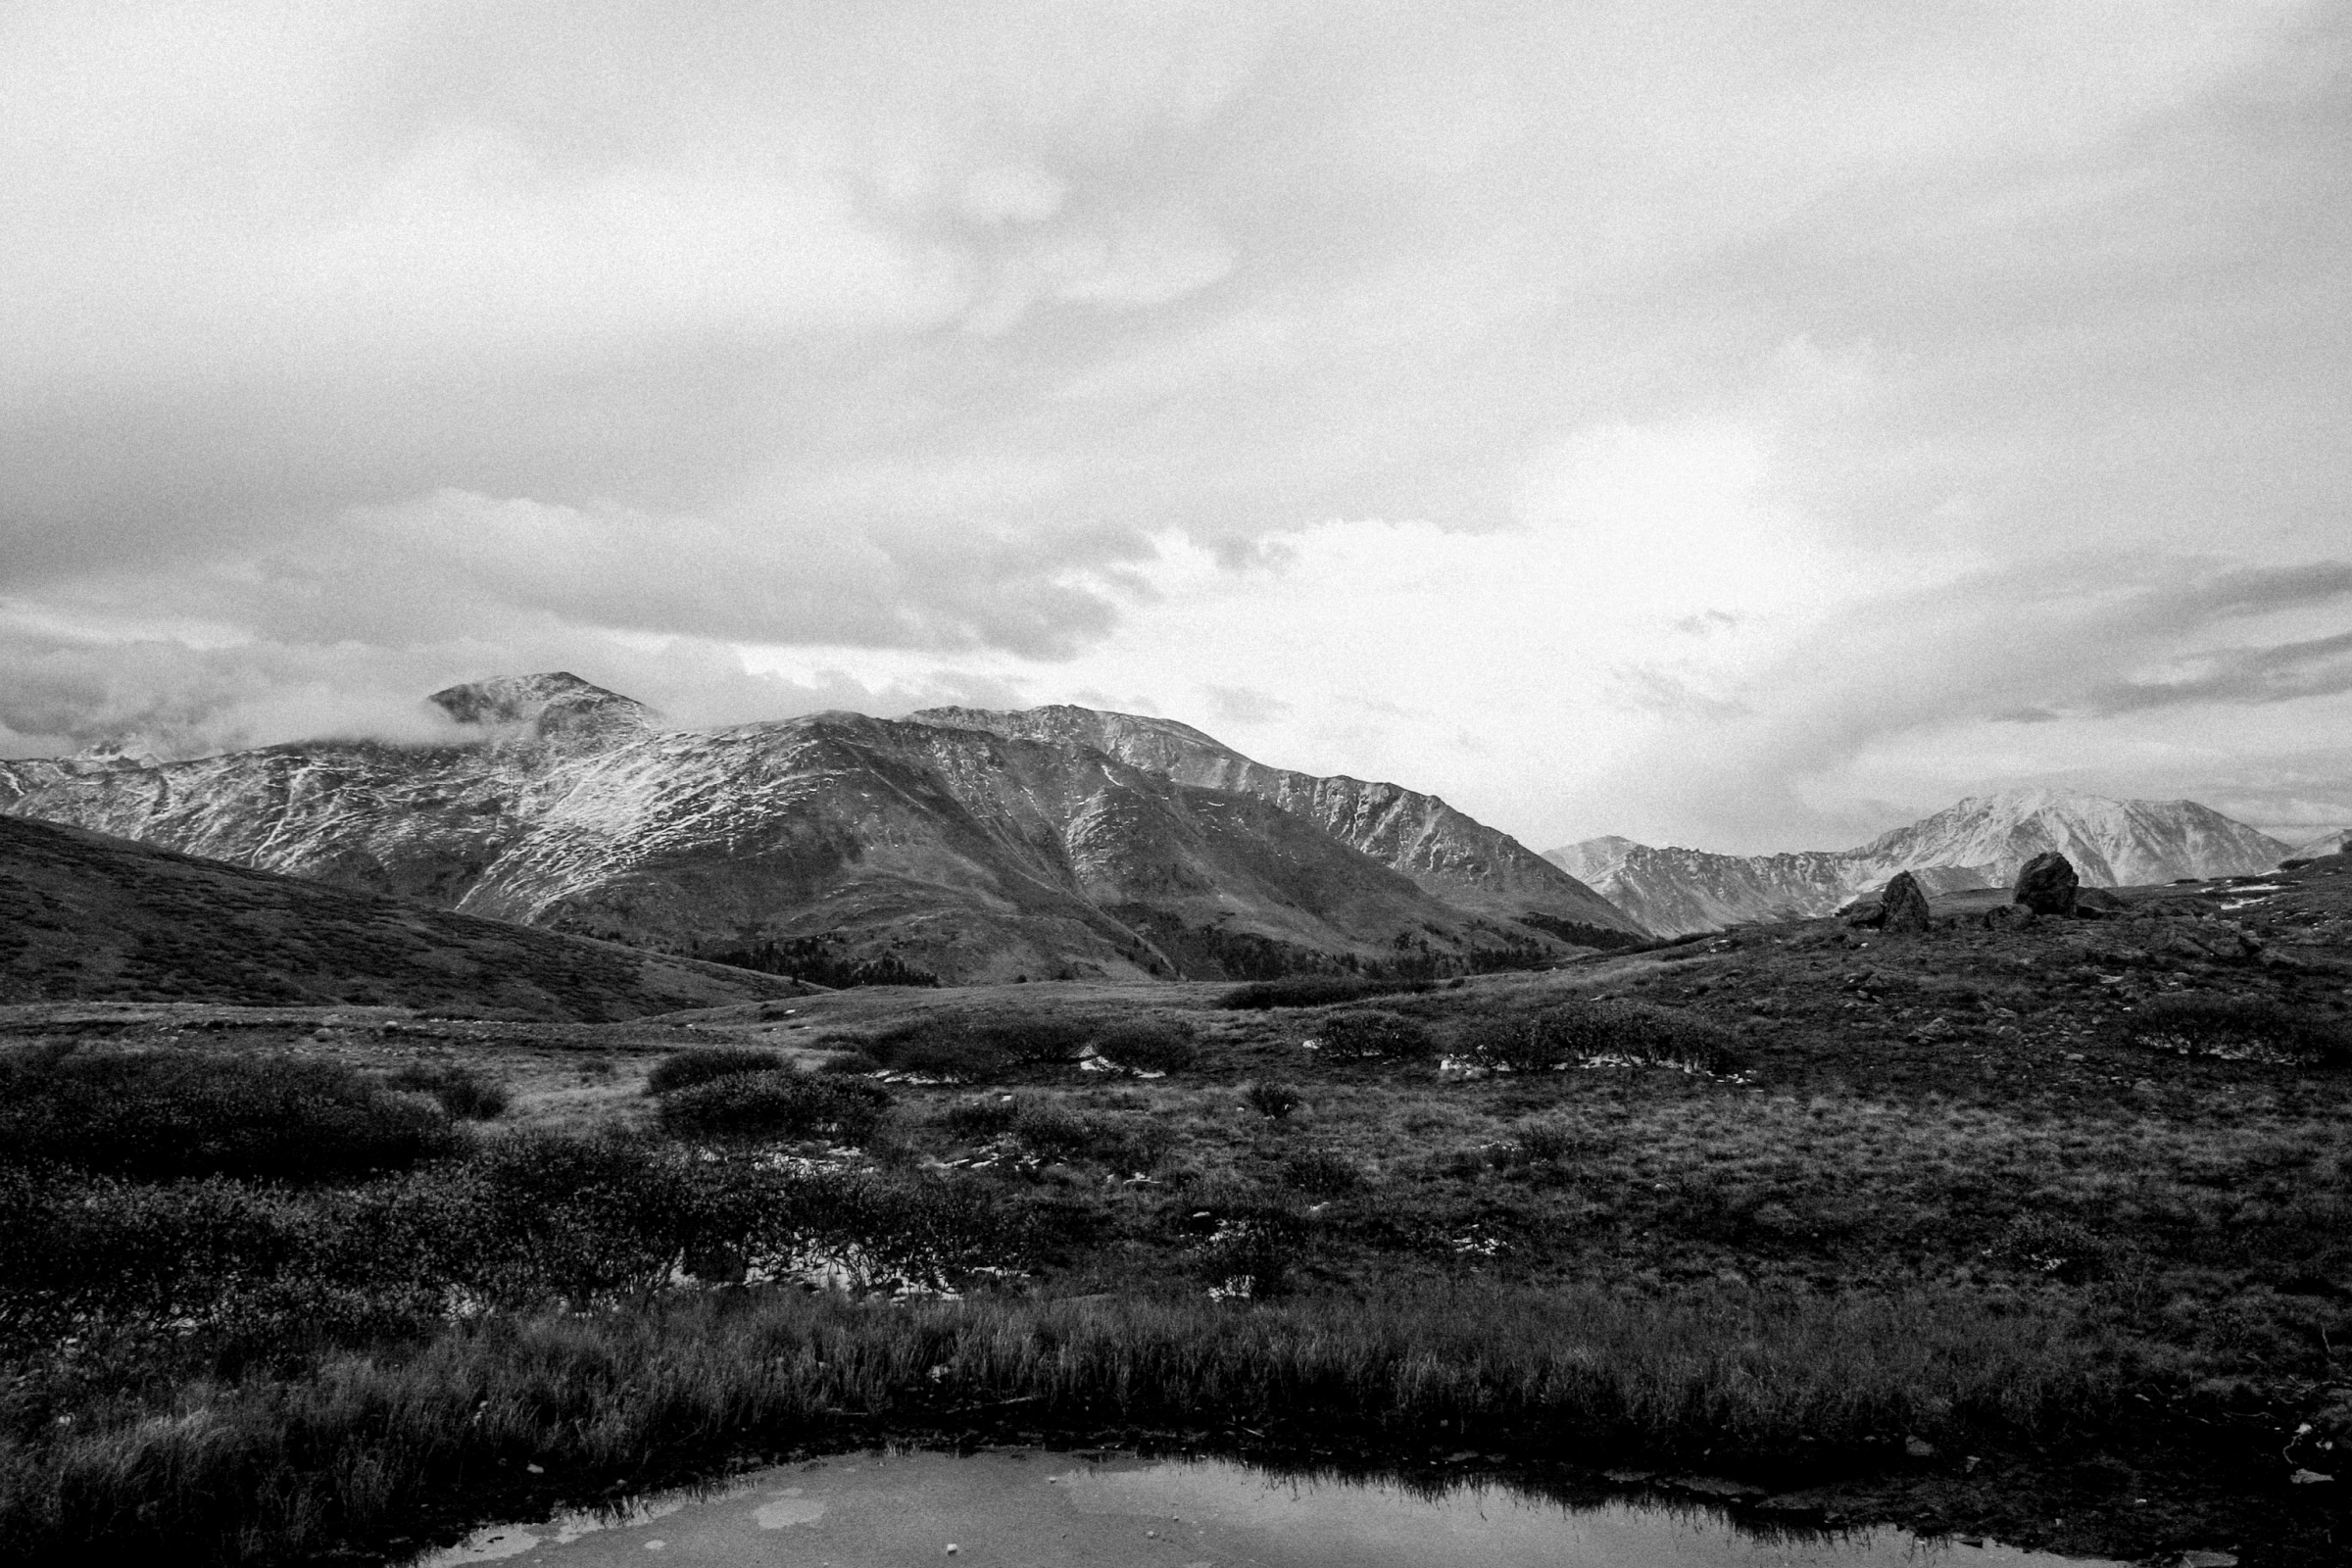 Independence-Pass-Colorado-black-and-white-fine-art-photography-by-Studio-L-photographer-Laura-Schneider-_8374